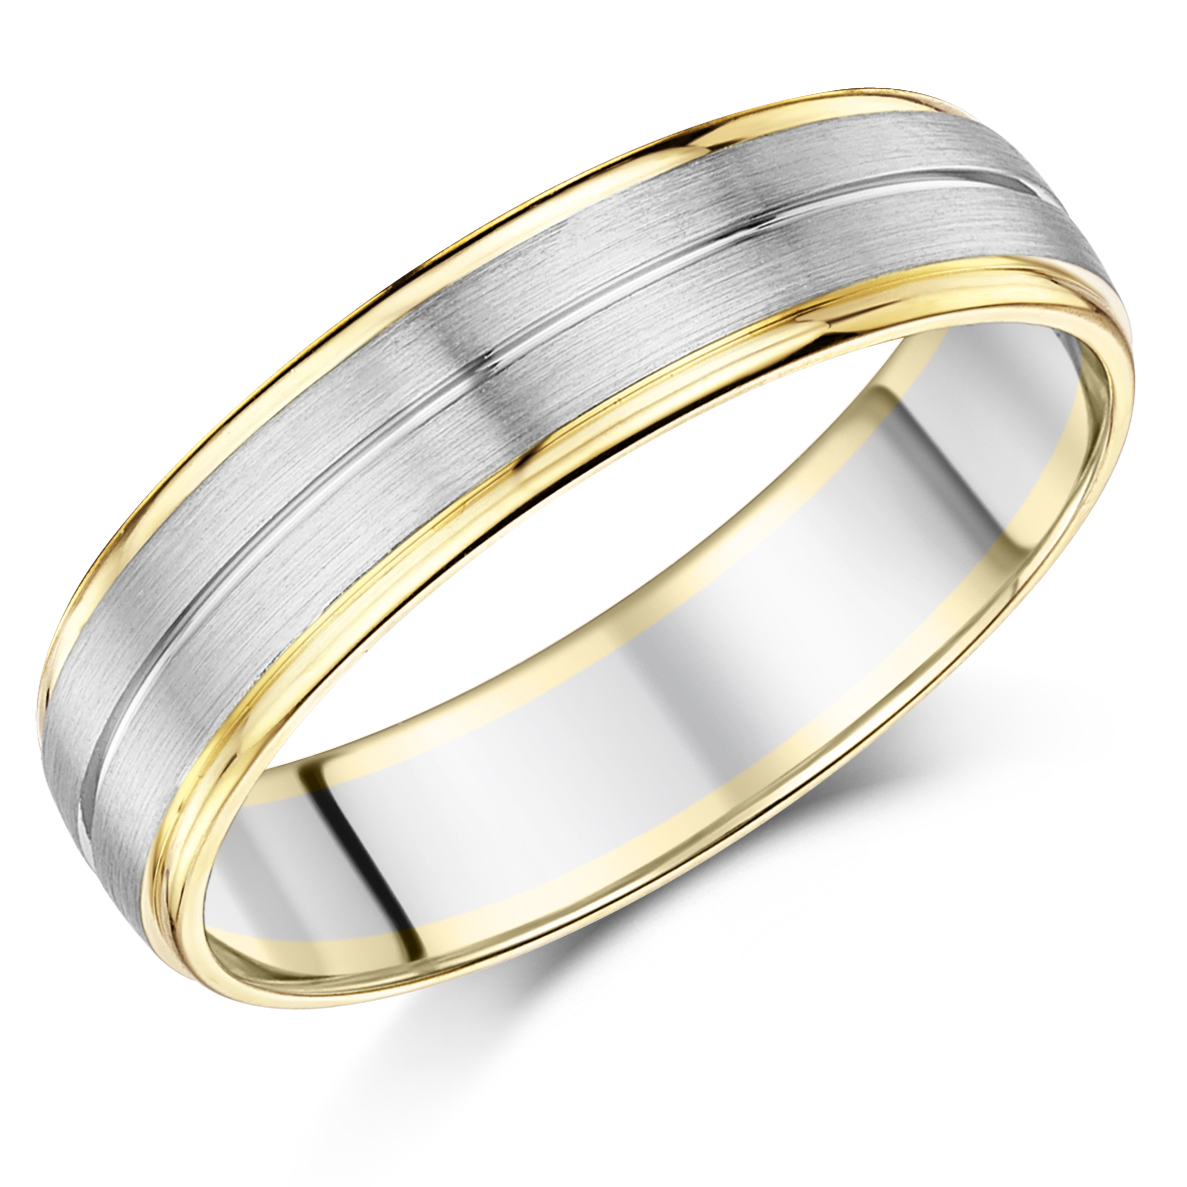 6mm Men's Palladium and 9ct Yellow Gold Wedding Ring